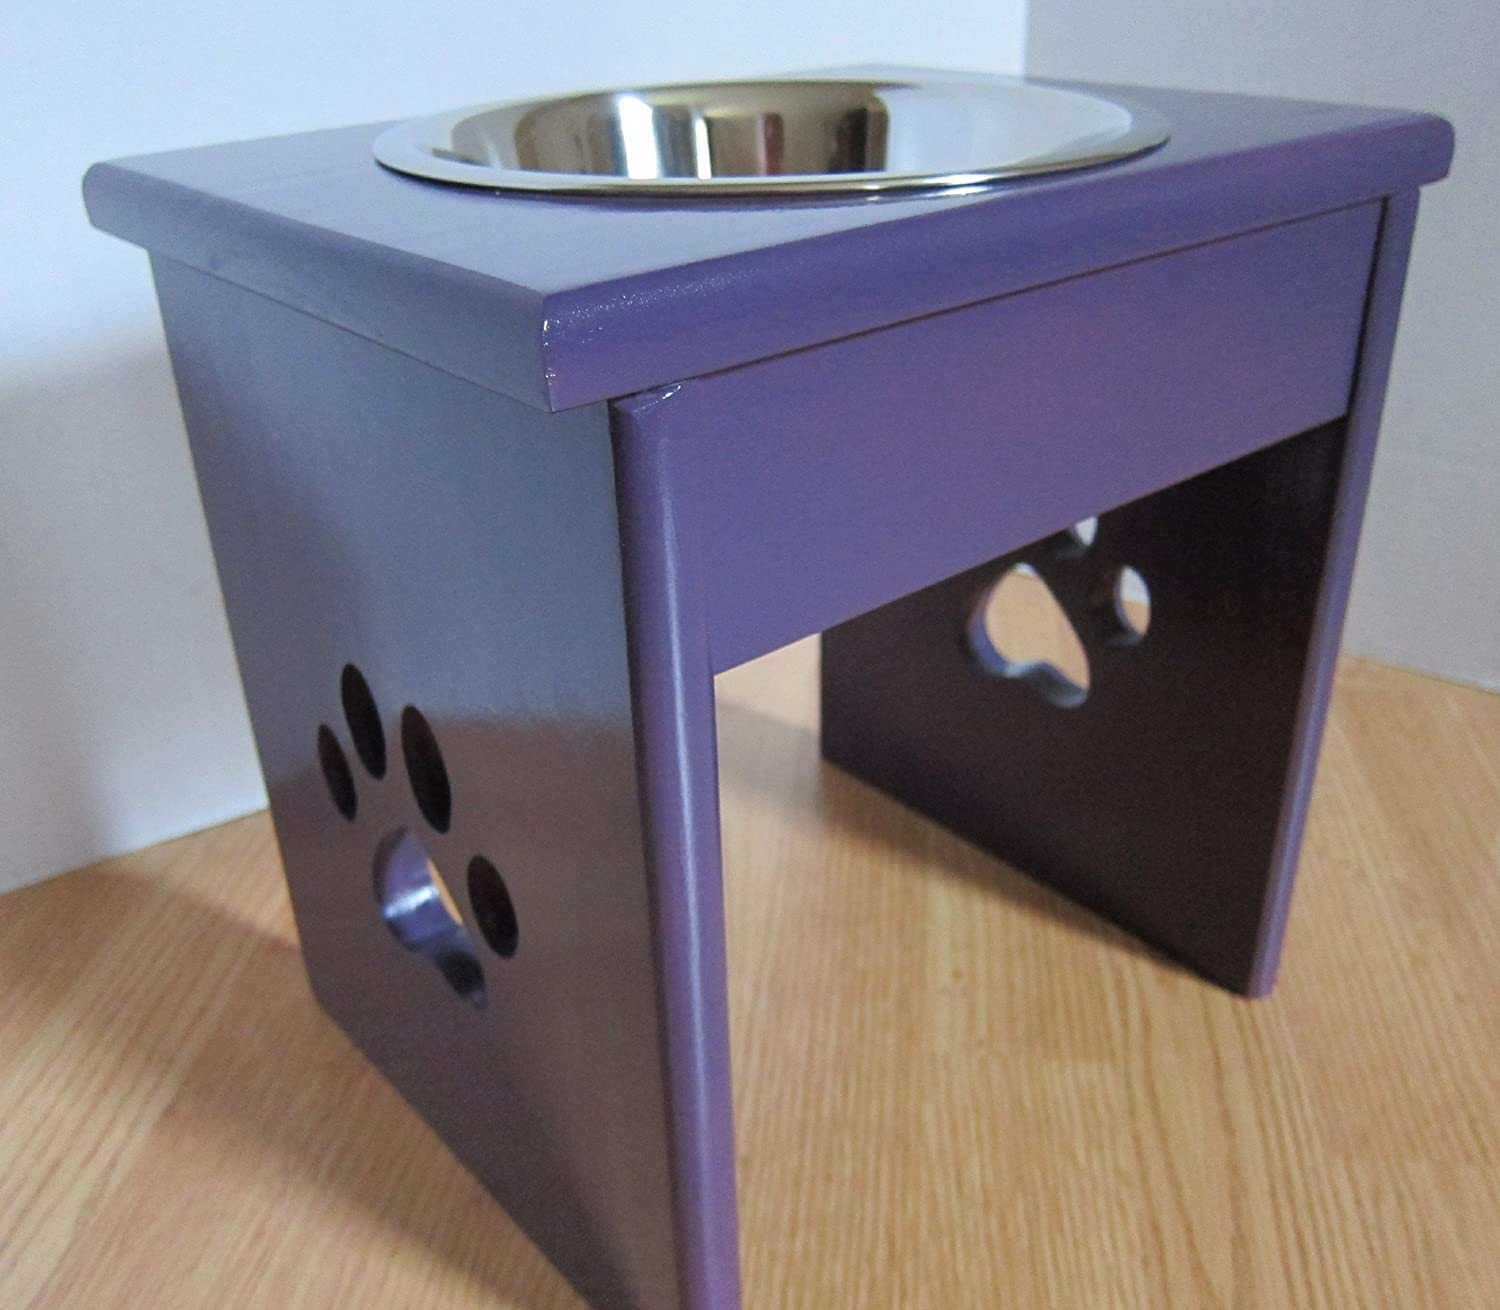 Single Paw Print Cut-Out Leg Elevated Food Dish Holder - XSmall